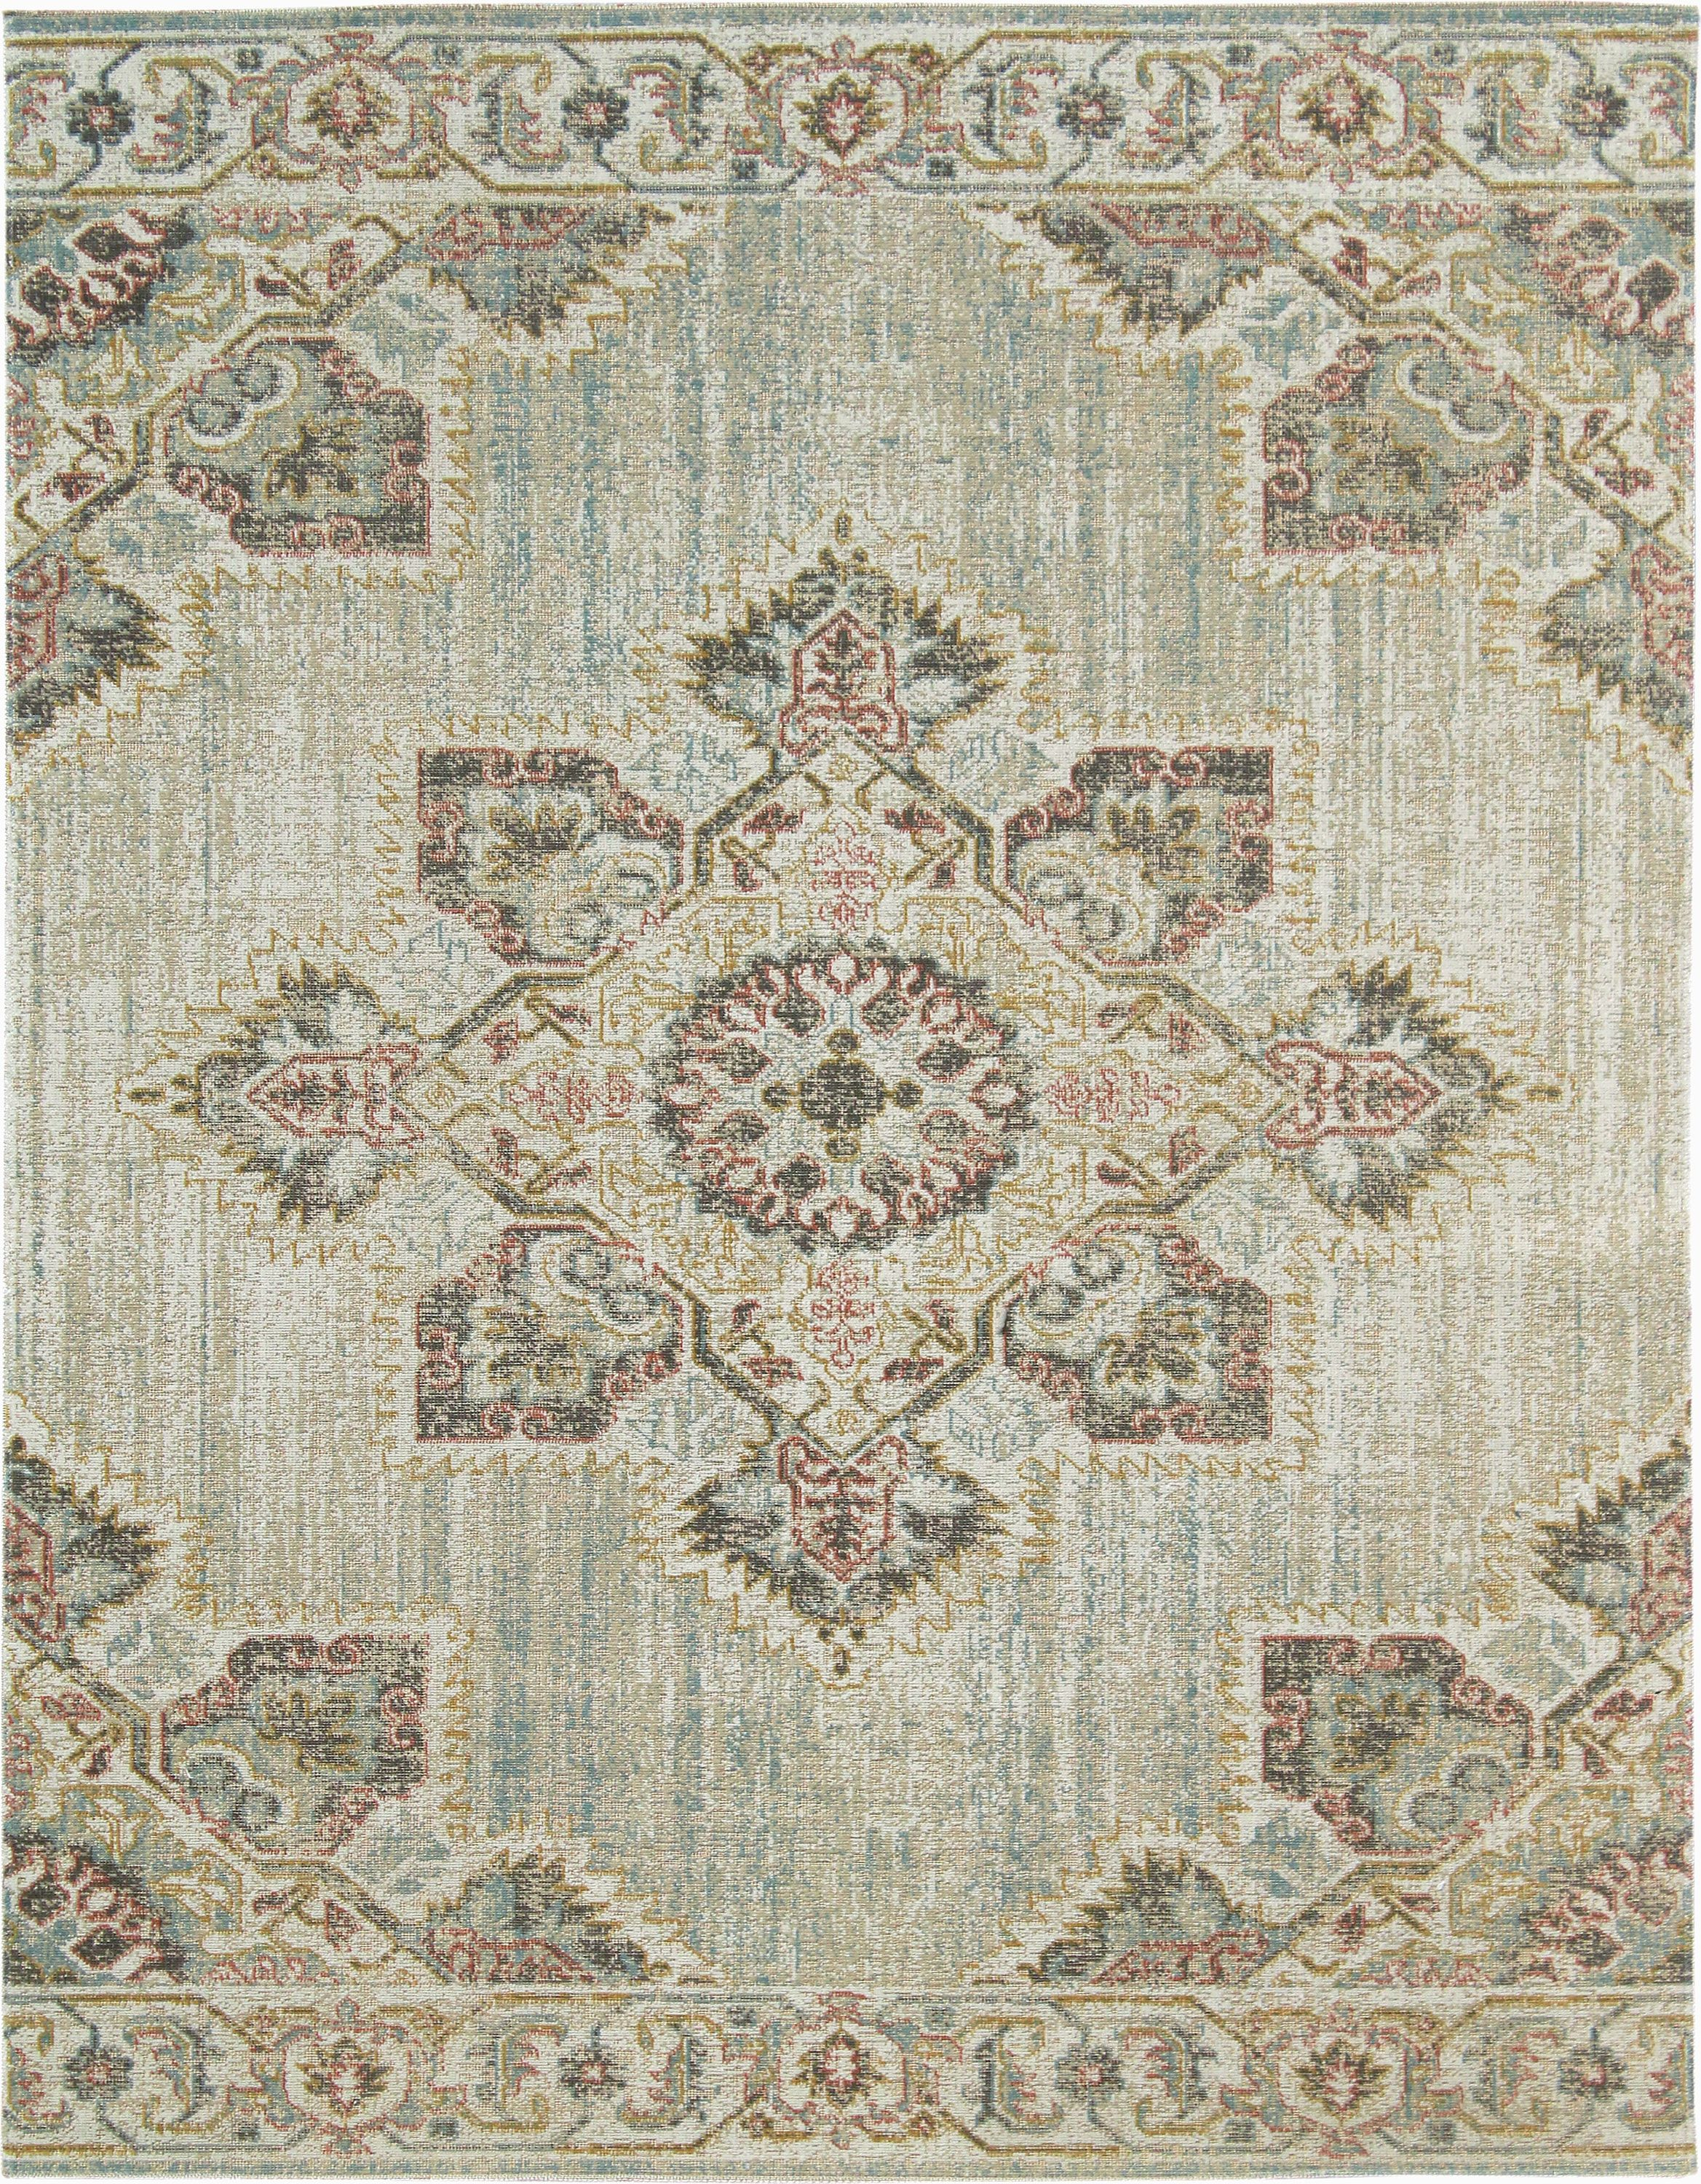 Ete 20 Color Beige Blue Ivory Size 9 10 X 13 10 Amer Rugs